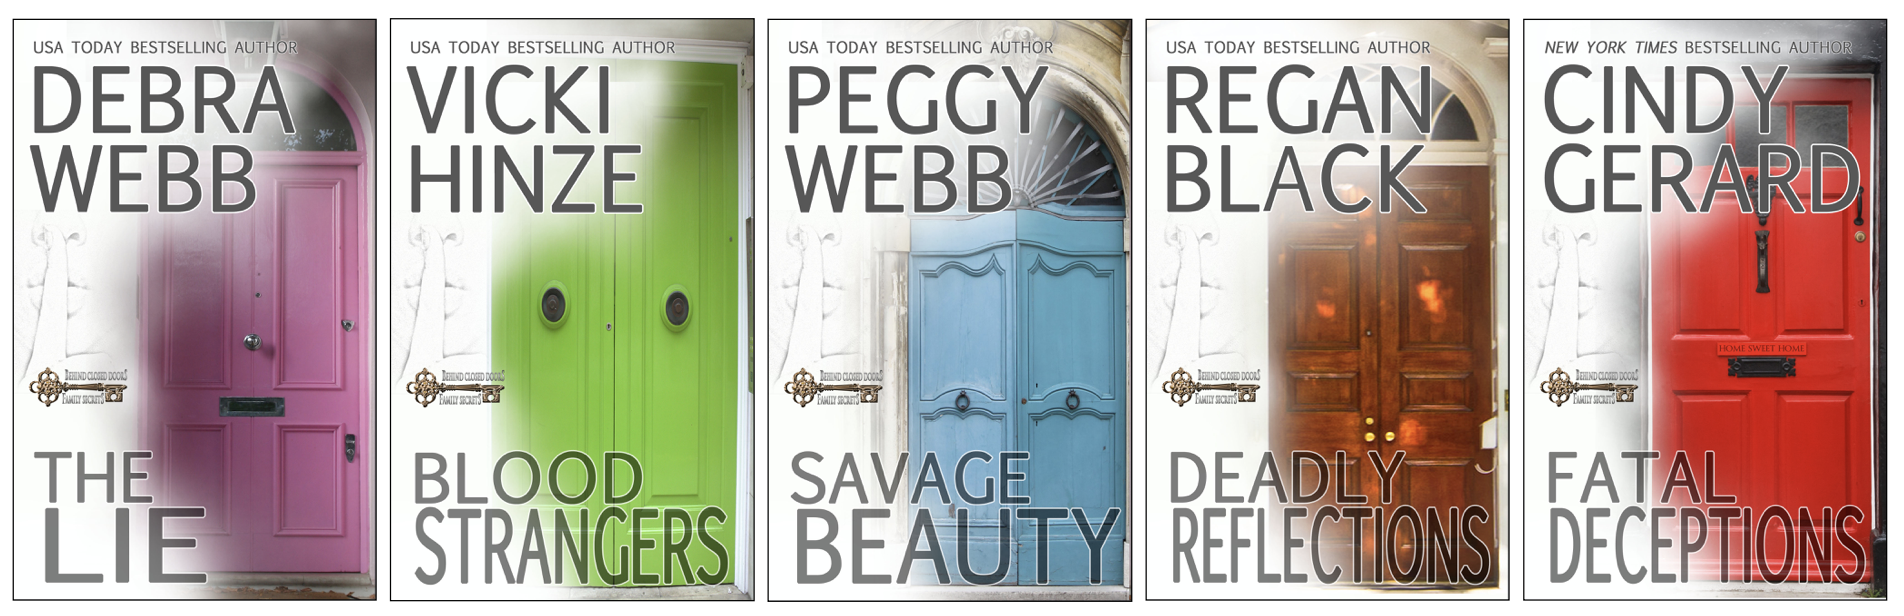 Behind Closed Doors, Family Secrets, Debra Webb, Vicki Hinze, Peggy Webb, Regan Black, Cindy Gerard